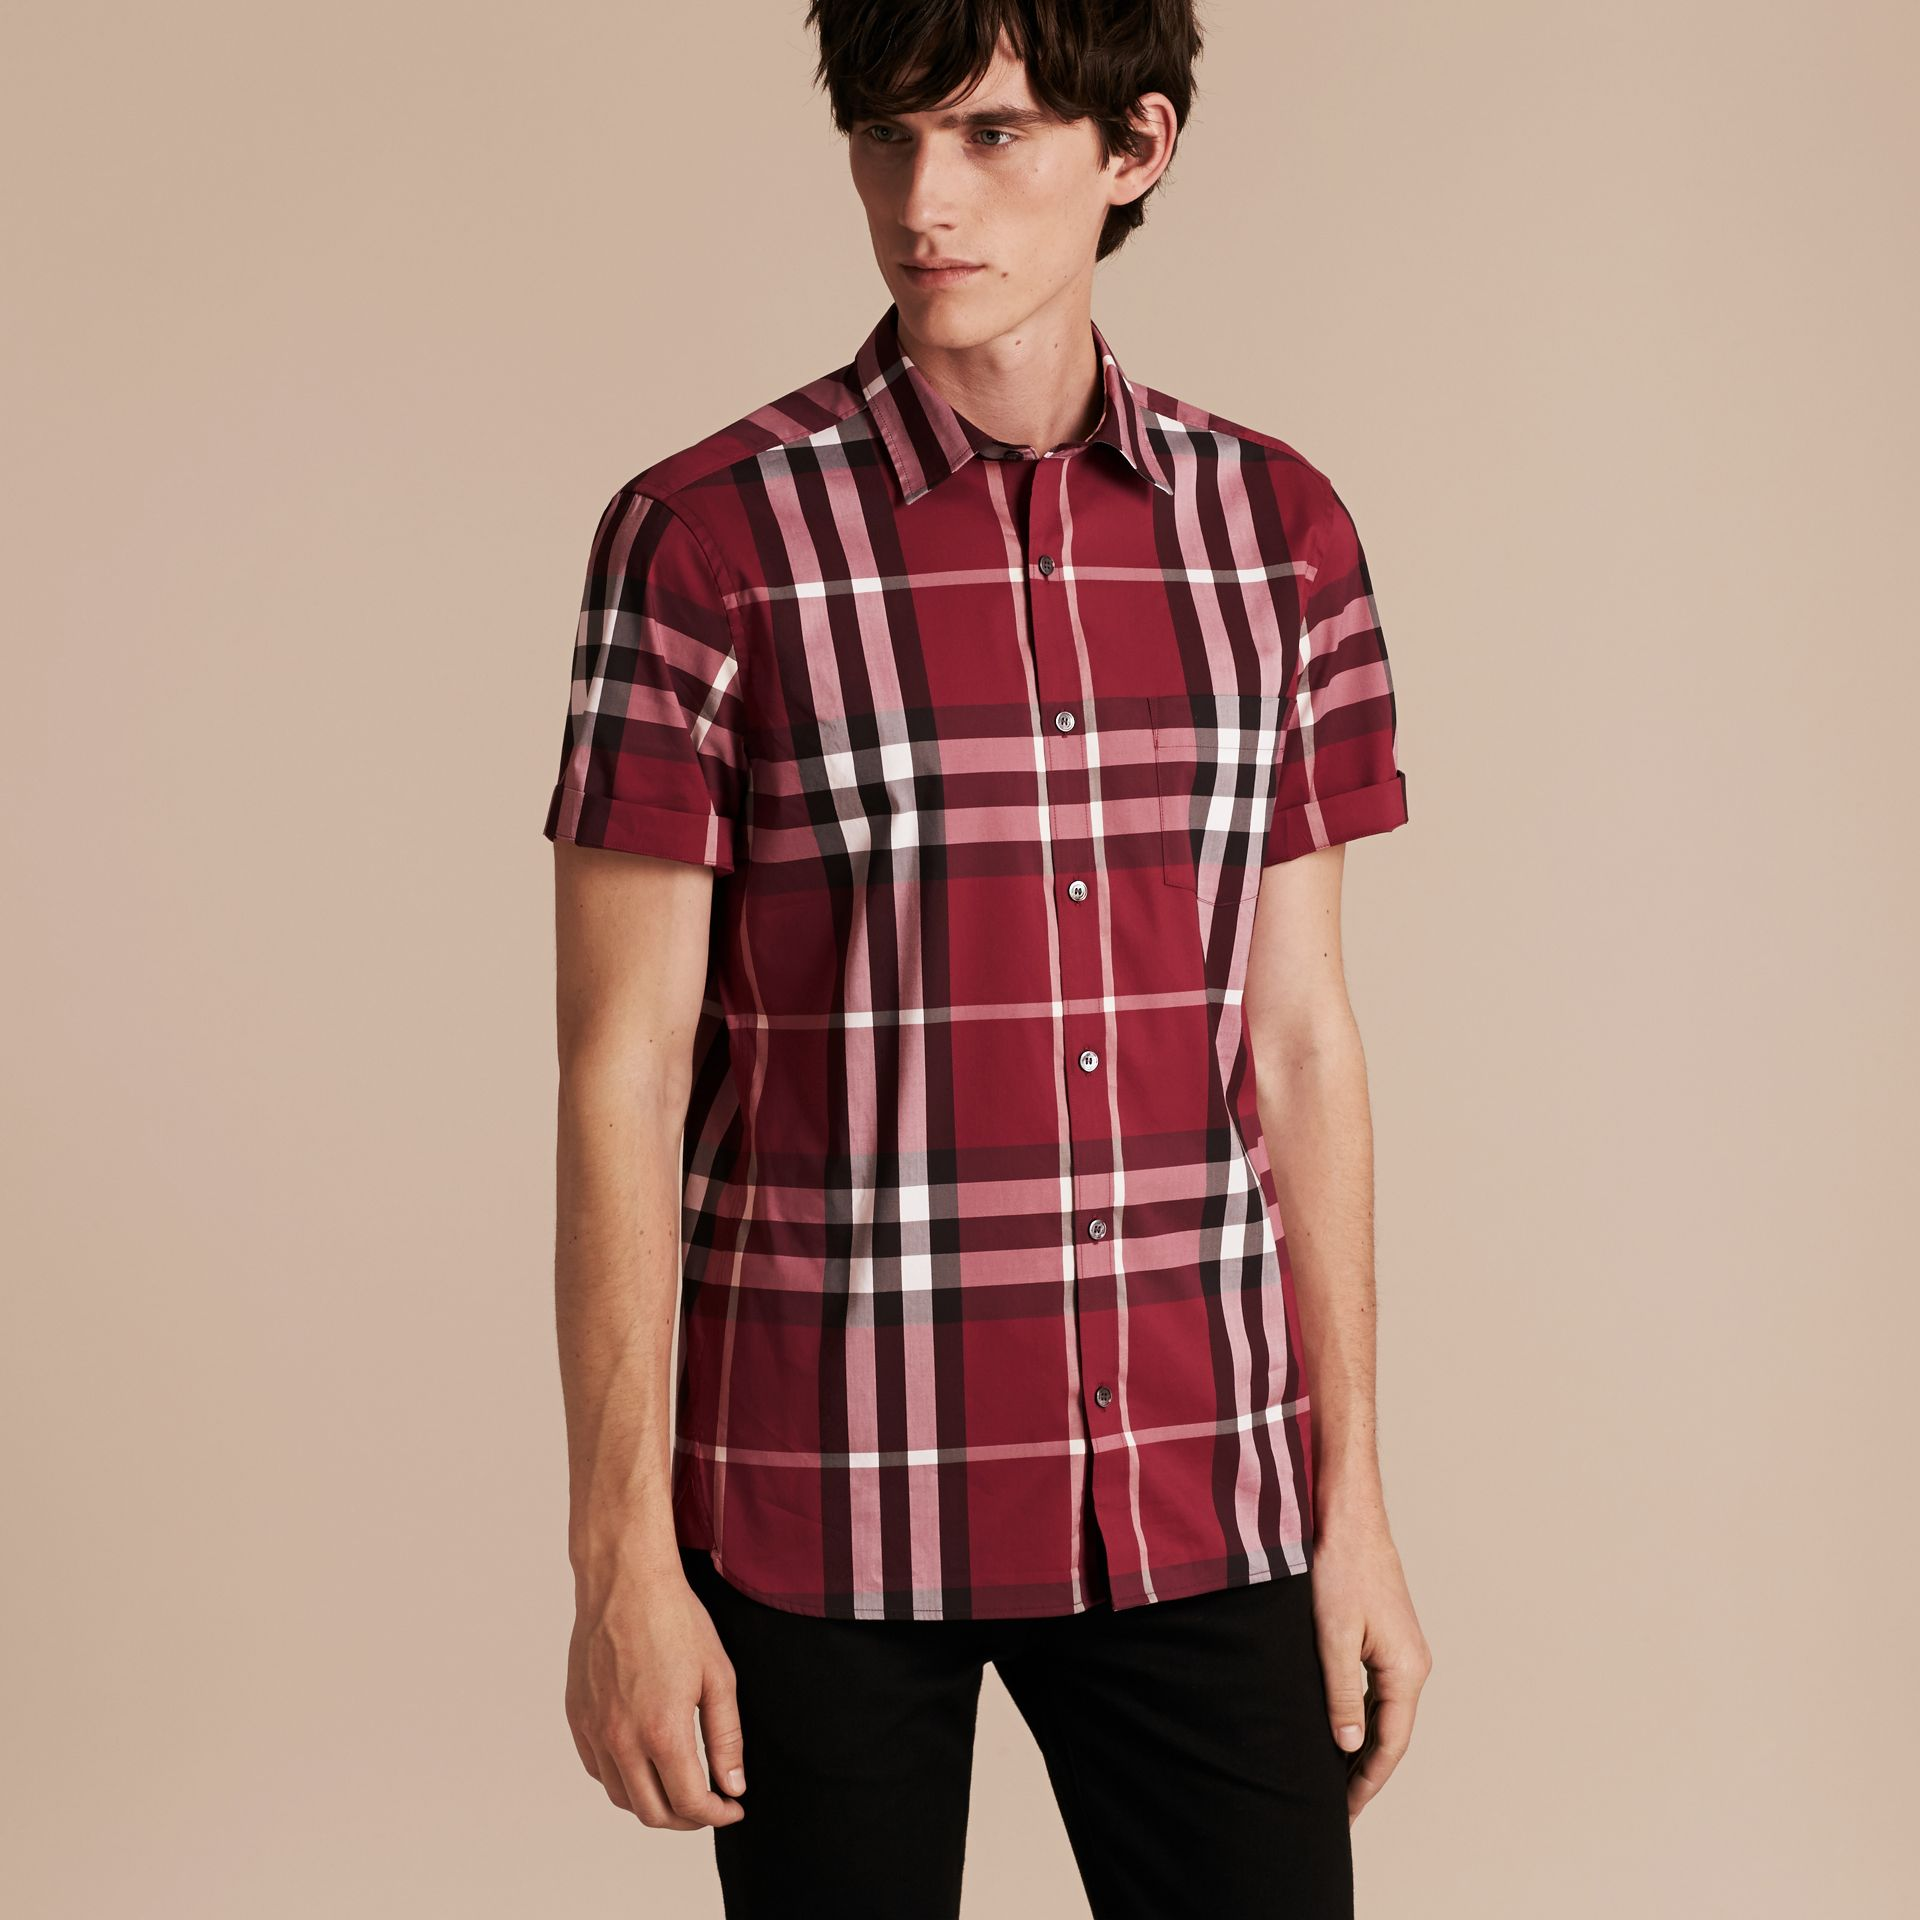 Short-sleeved Check Stretch Cotton Shirt in Plum Pink - Men | Burberry Australia - gallery image 6